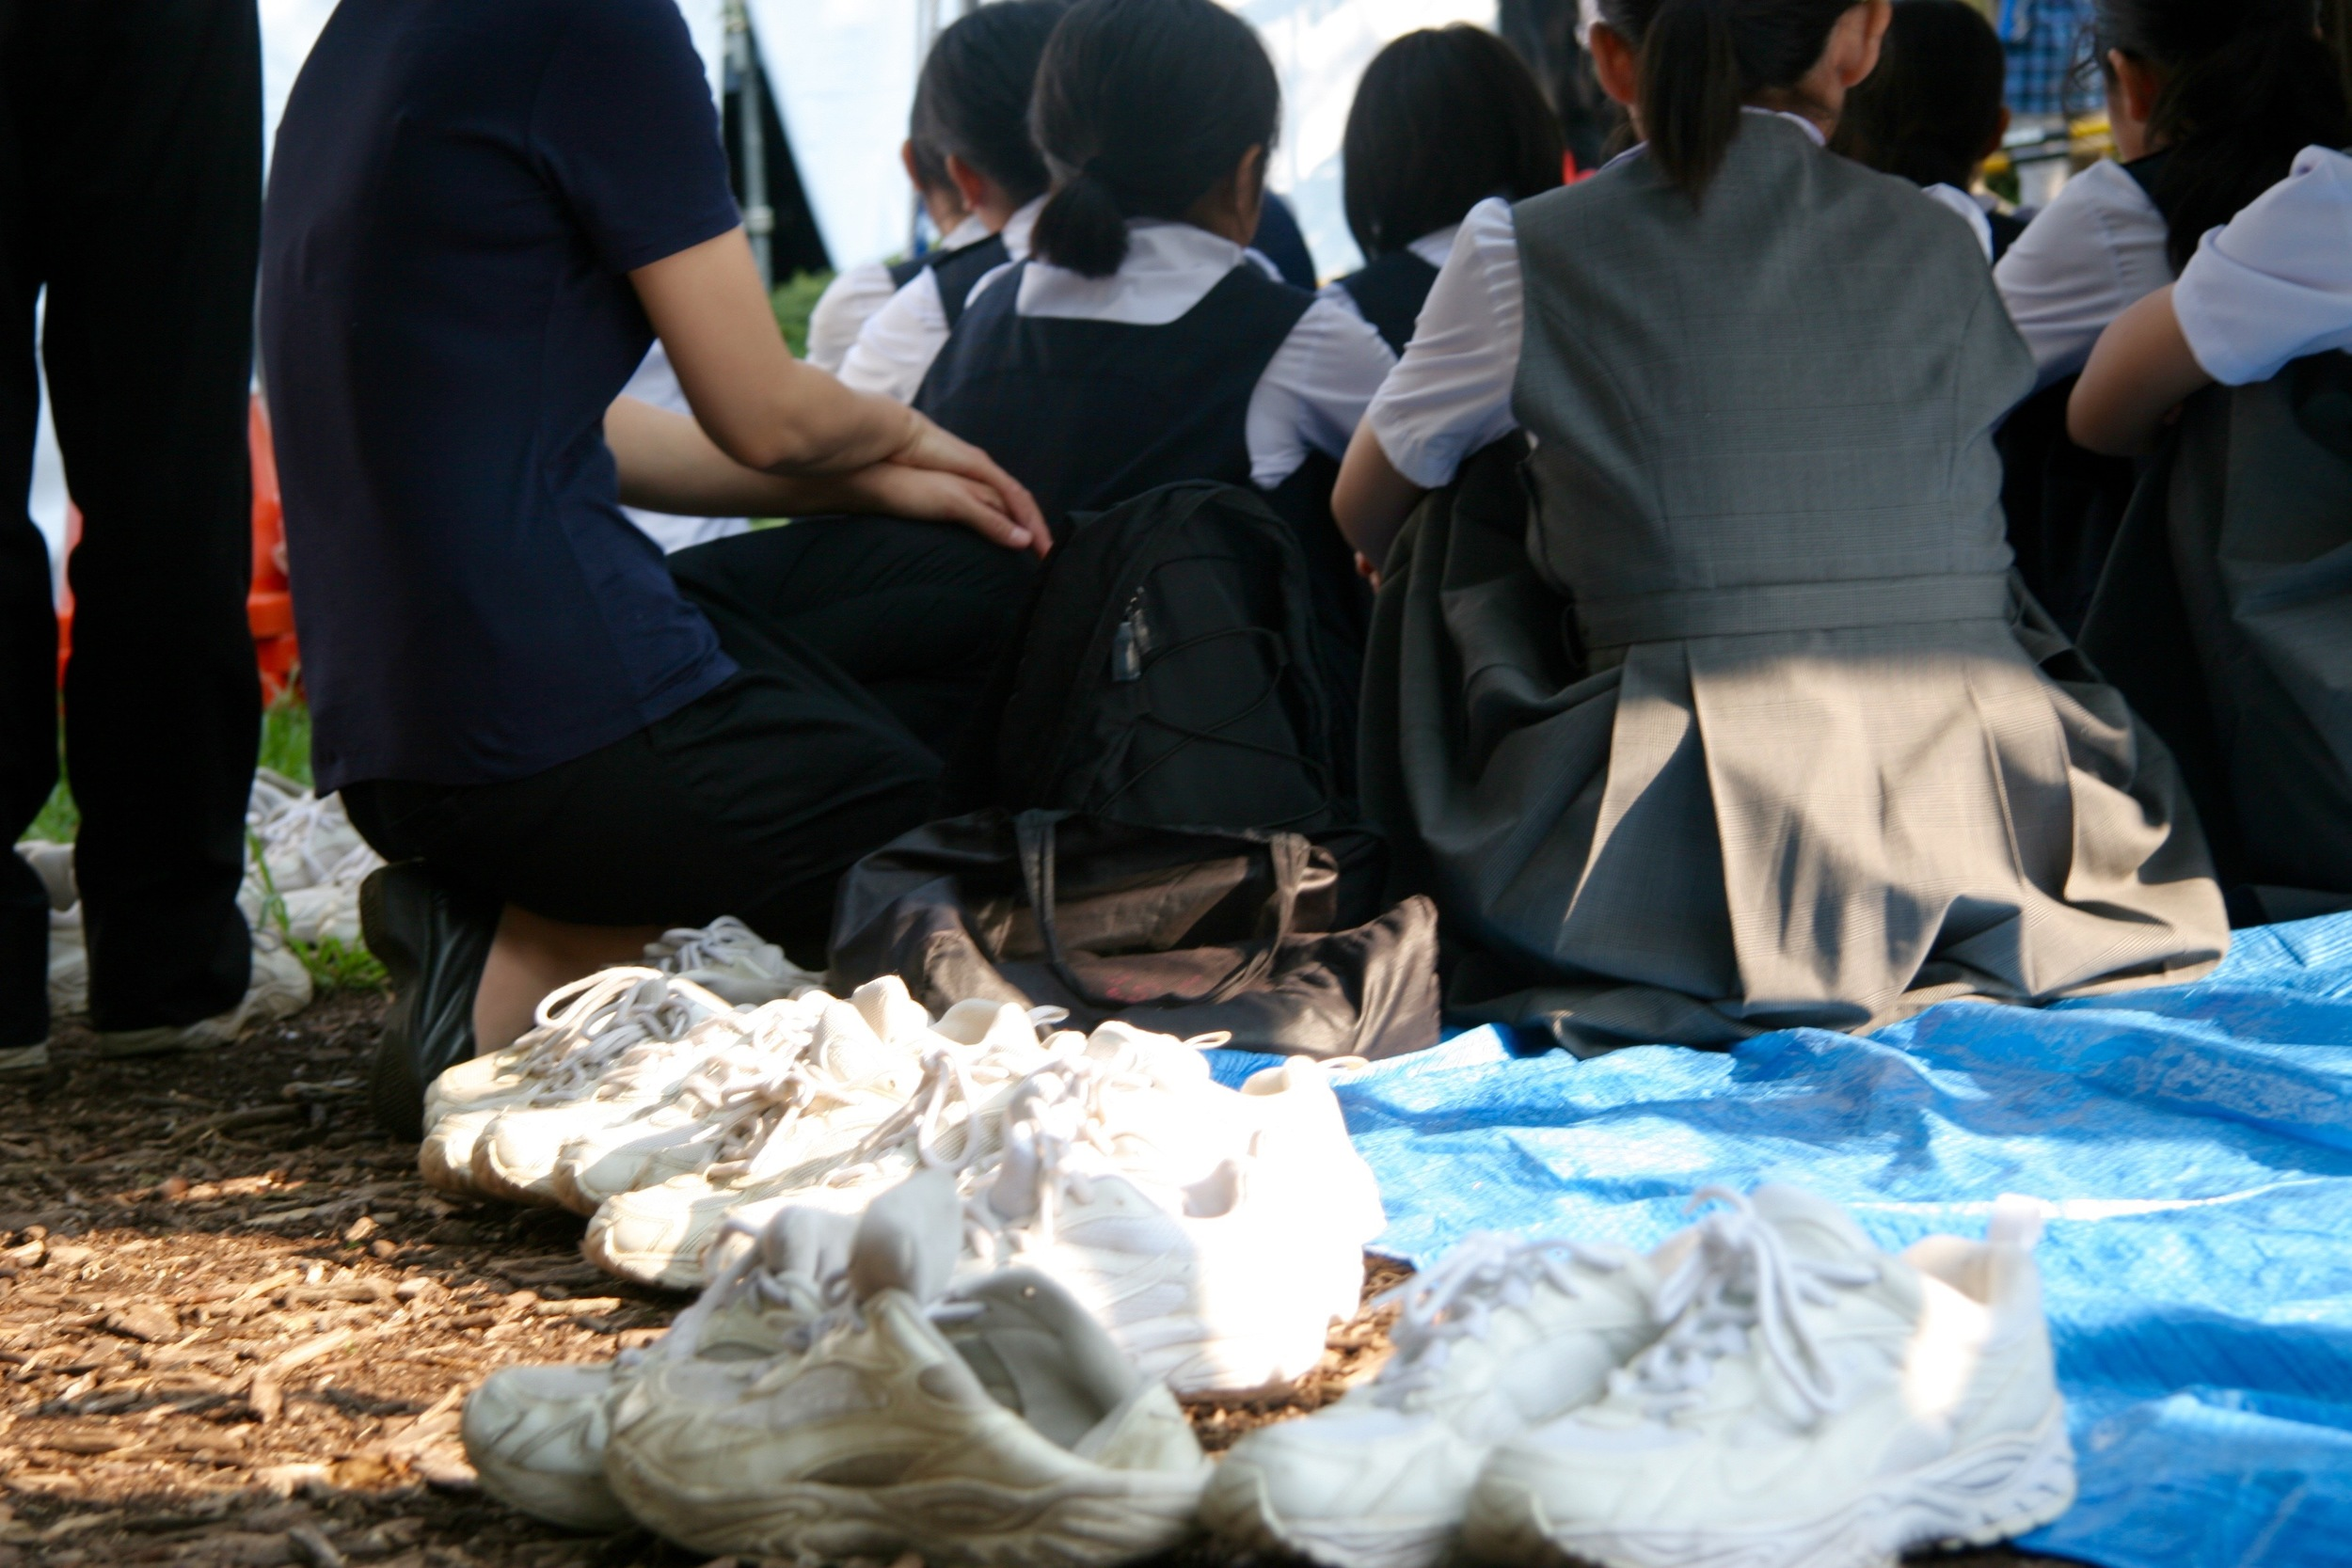 Students sat on tarps around the ceremony grounds to listen to speeches from the mayor, prime minister Abe Shinzo, and other schoolchildren